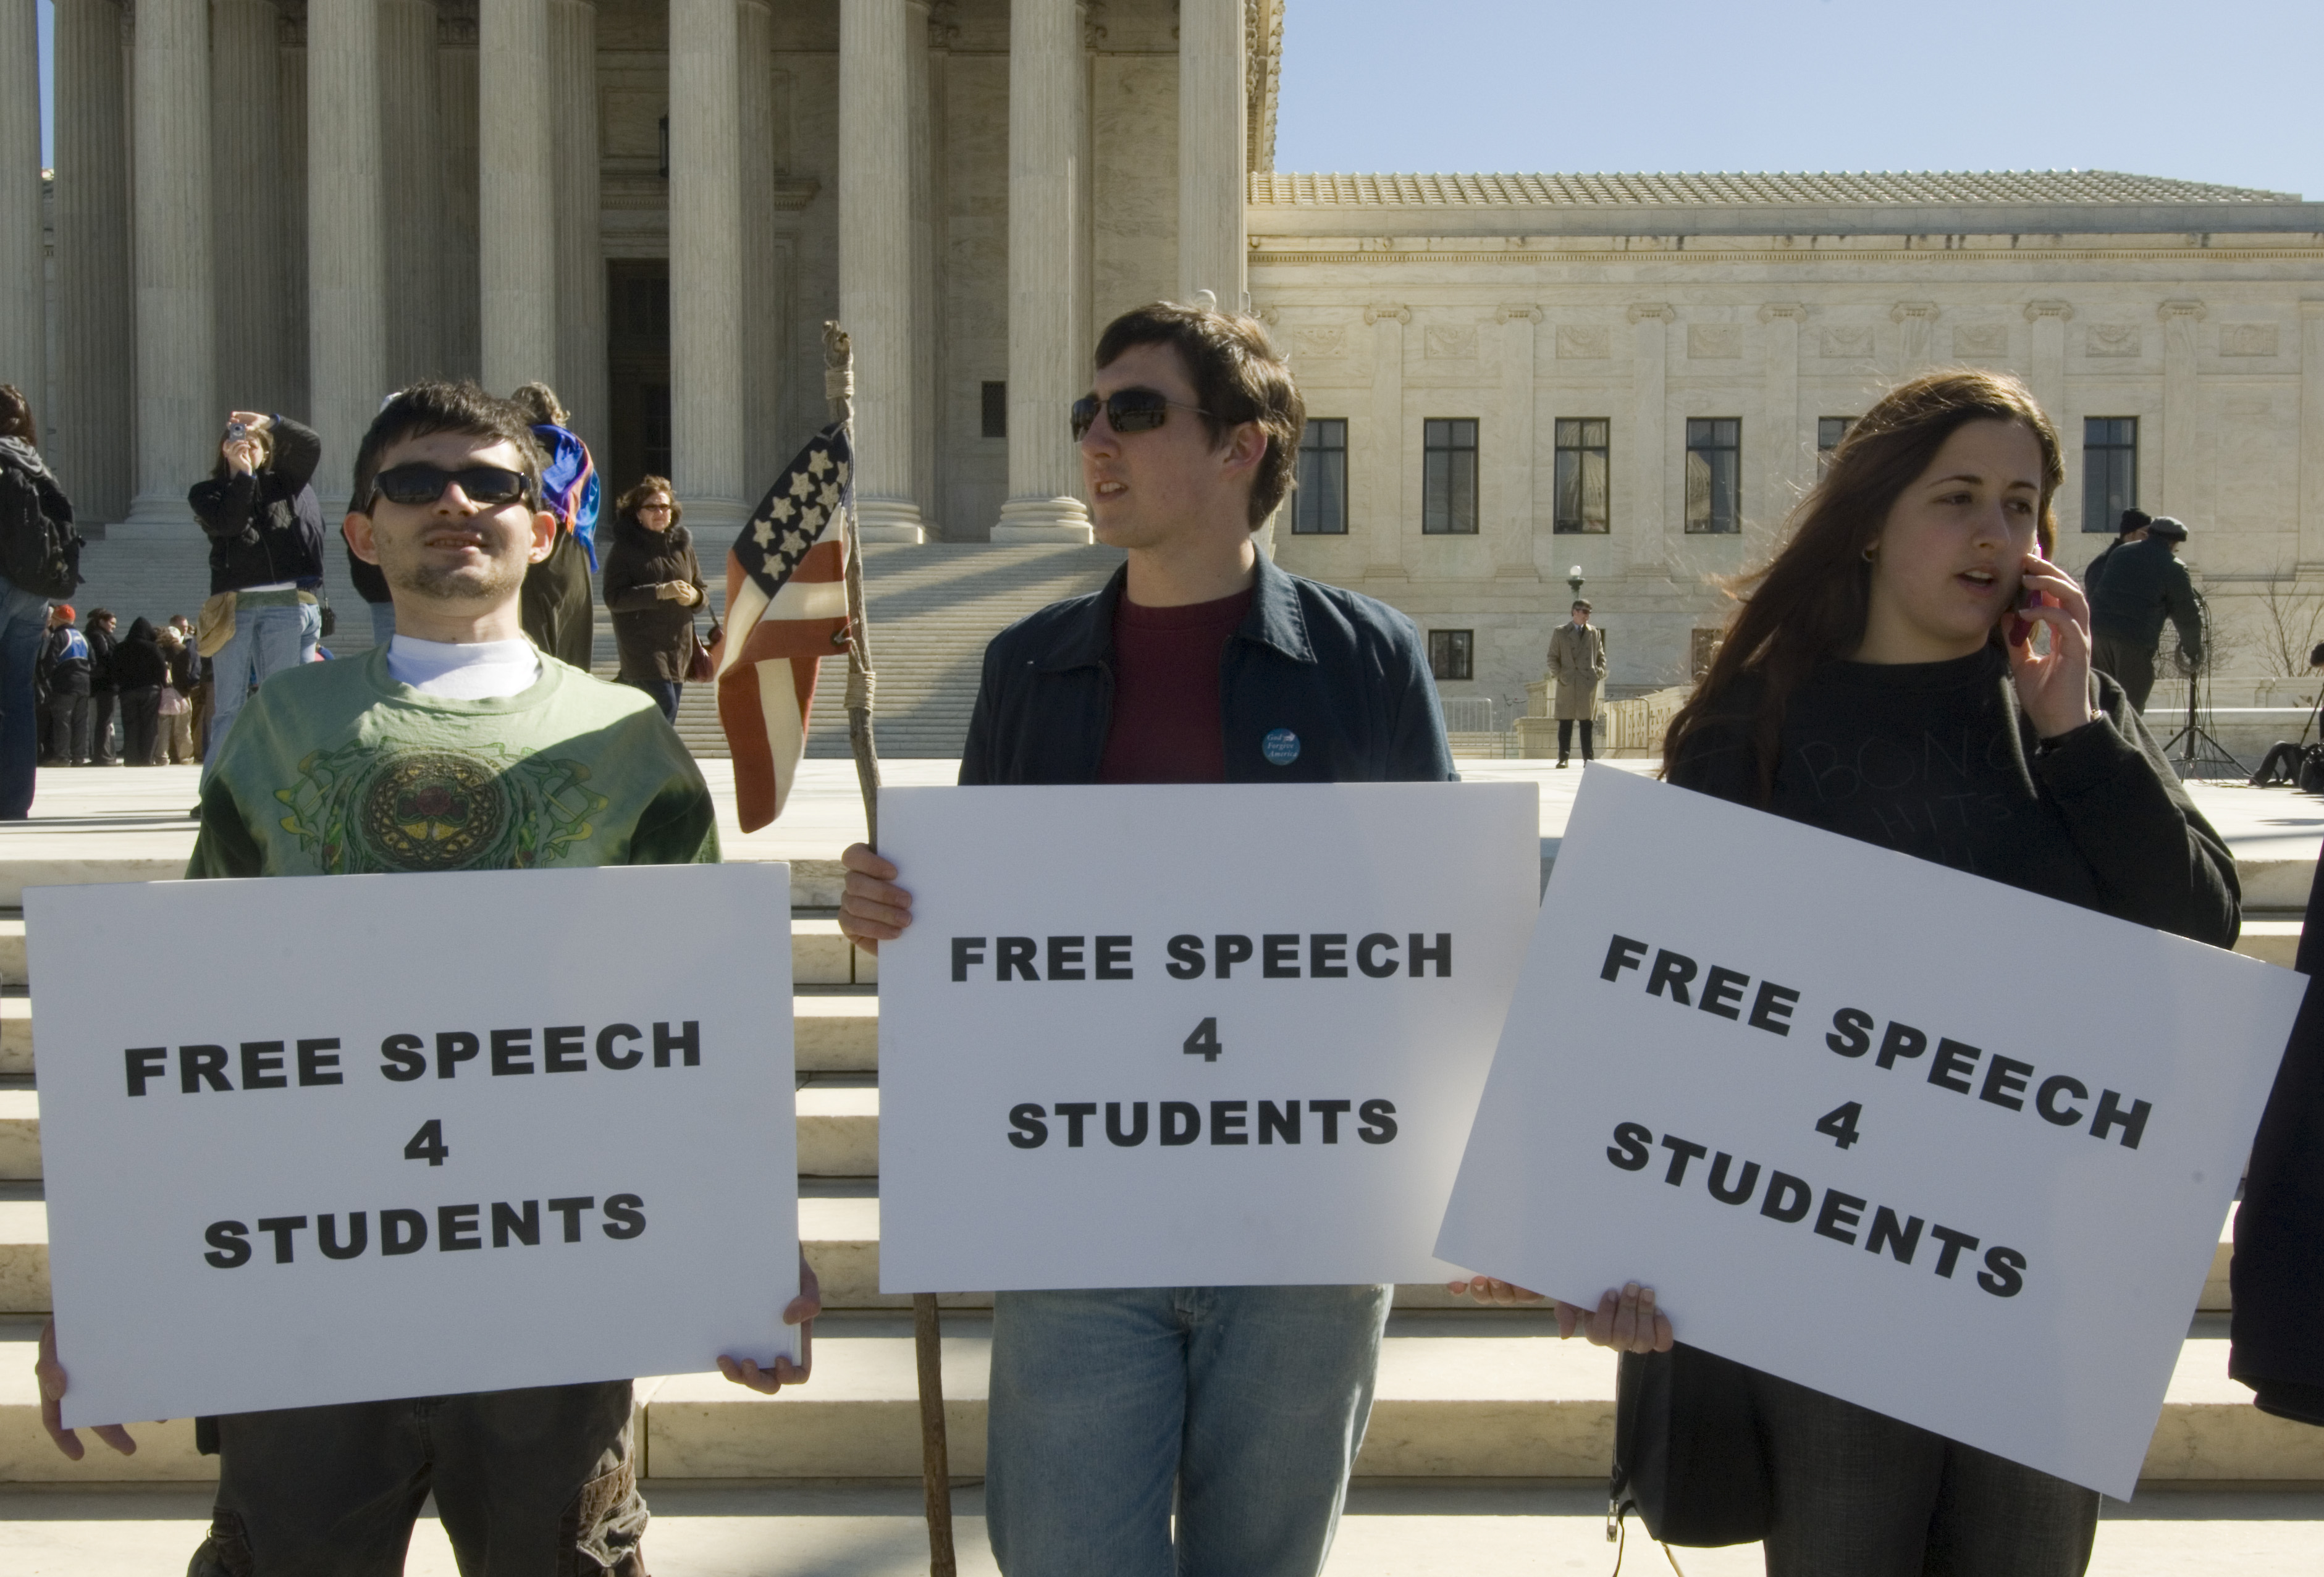 Students protest outside U.S. Supreme Court